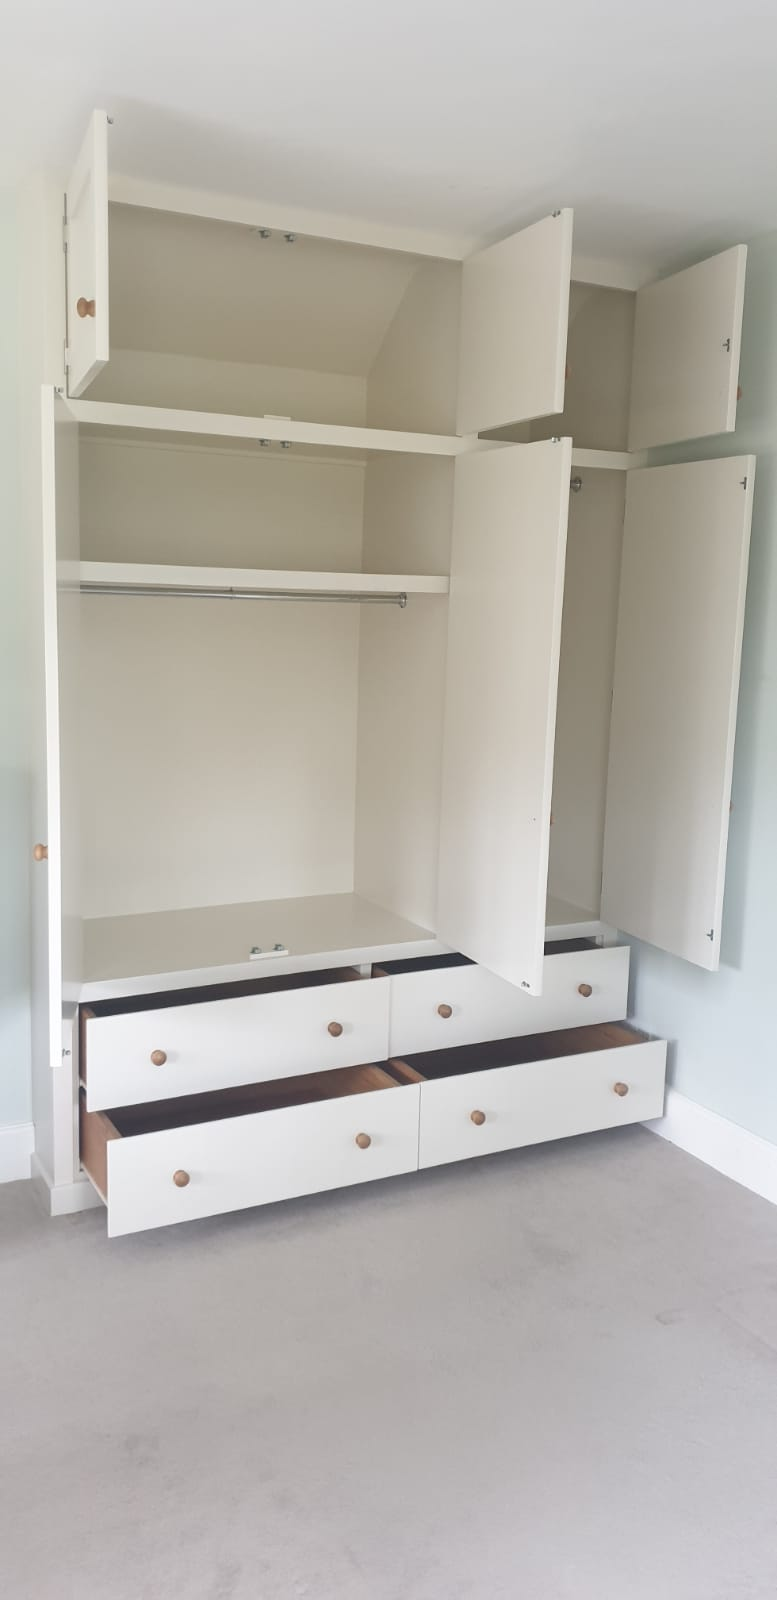 boars-hill-wardrobe-project-04